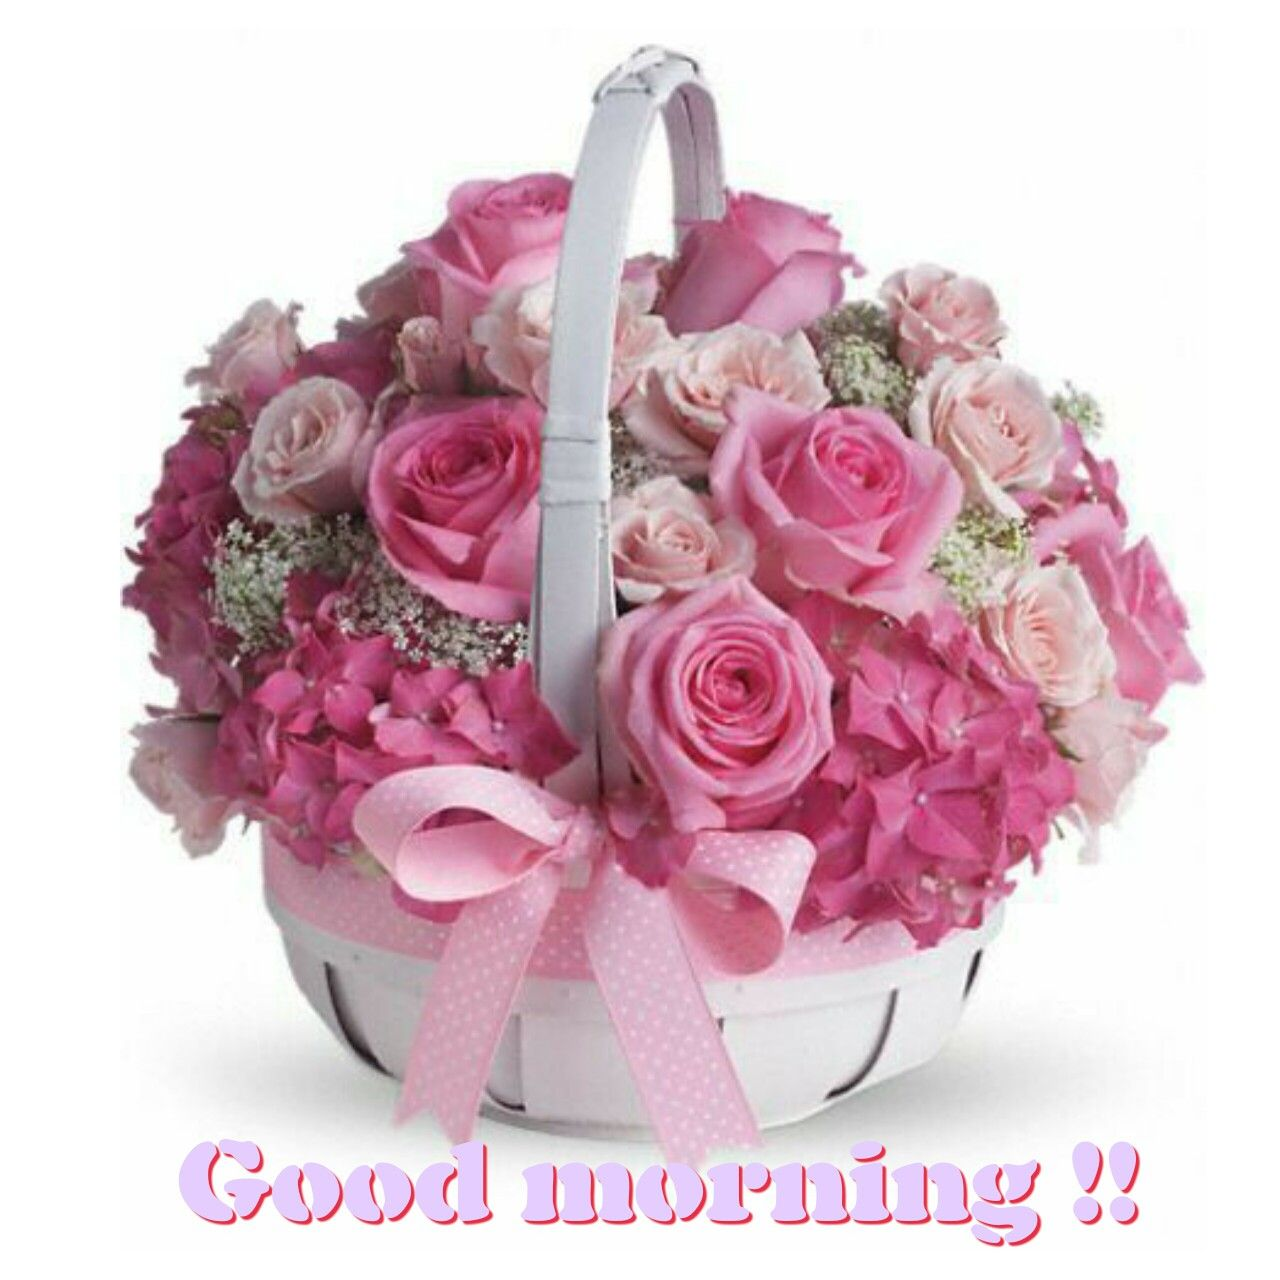 Good morning with lovely rose bouquet in vase bg petro with lovely rose bouquet in vase bg new baby flowers izmirmasajfo